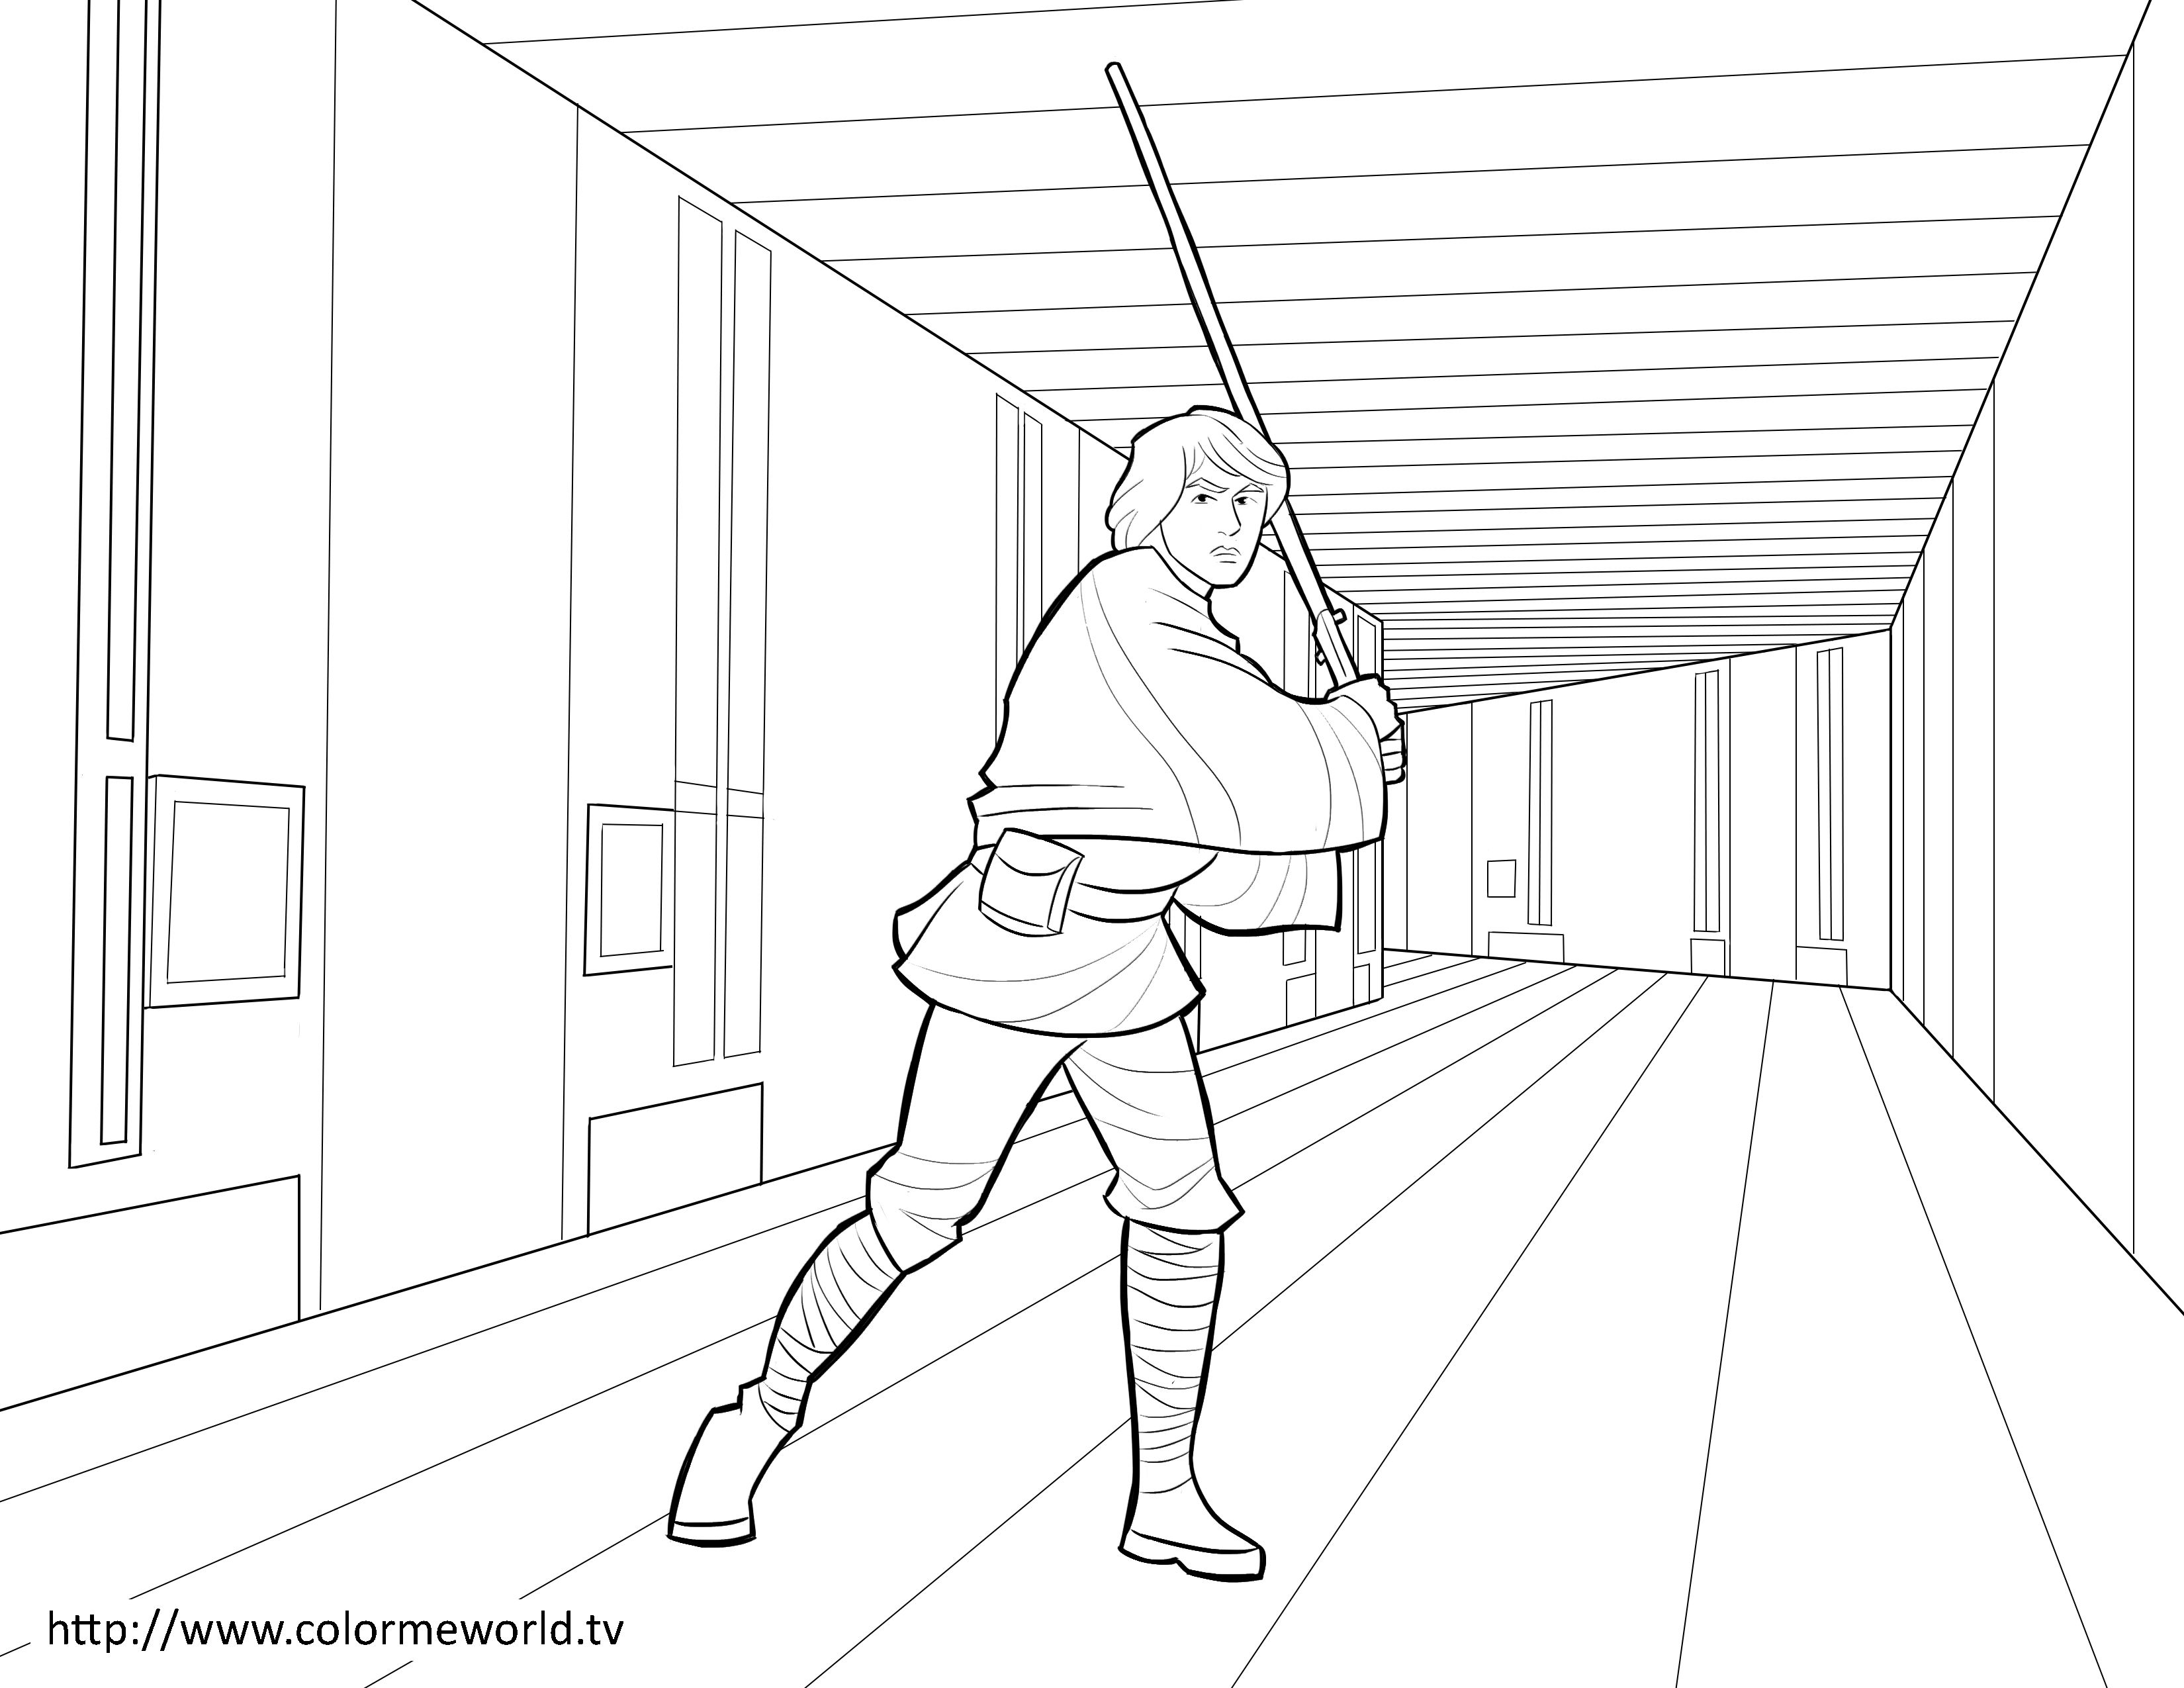 Print star wars captain rex coloring pages | LineArt: Star Wars ...